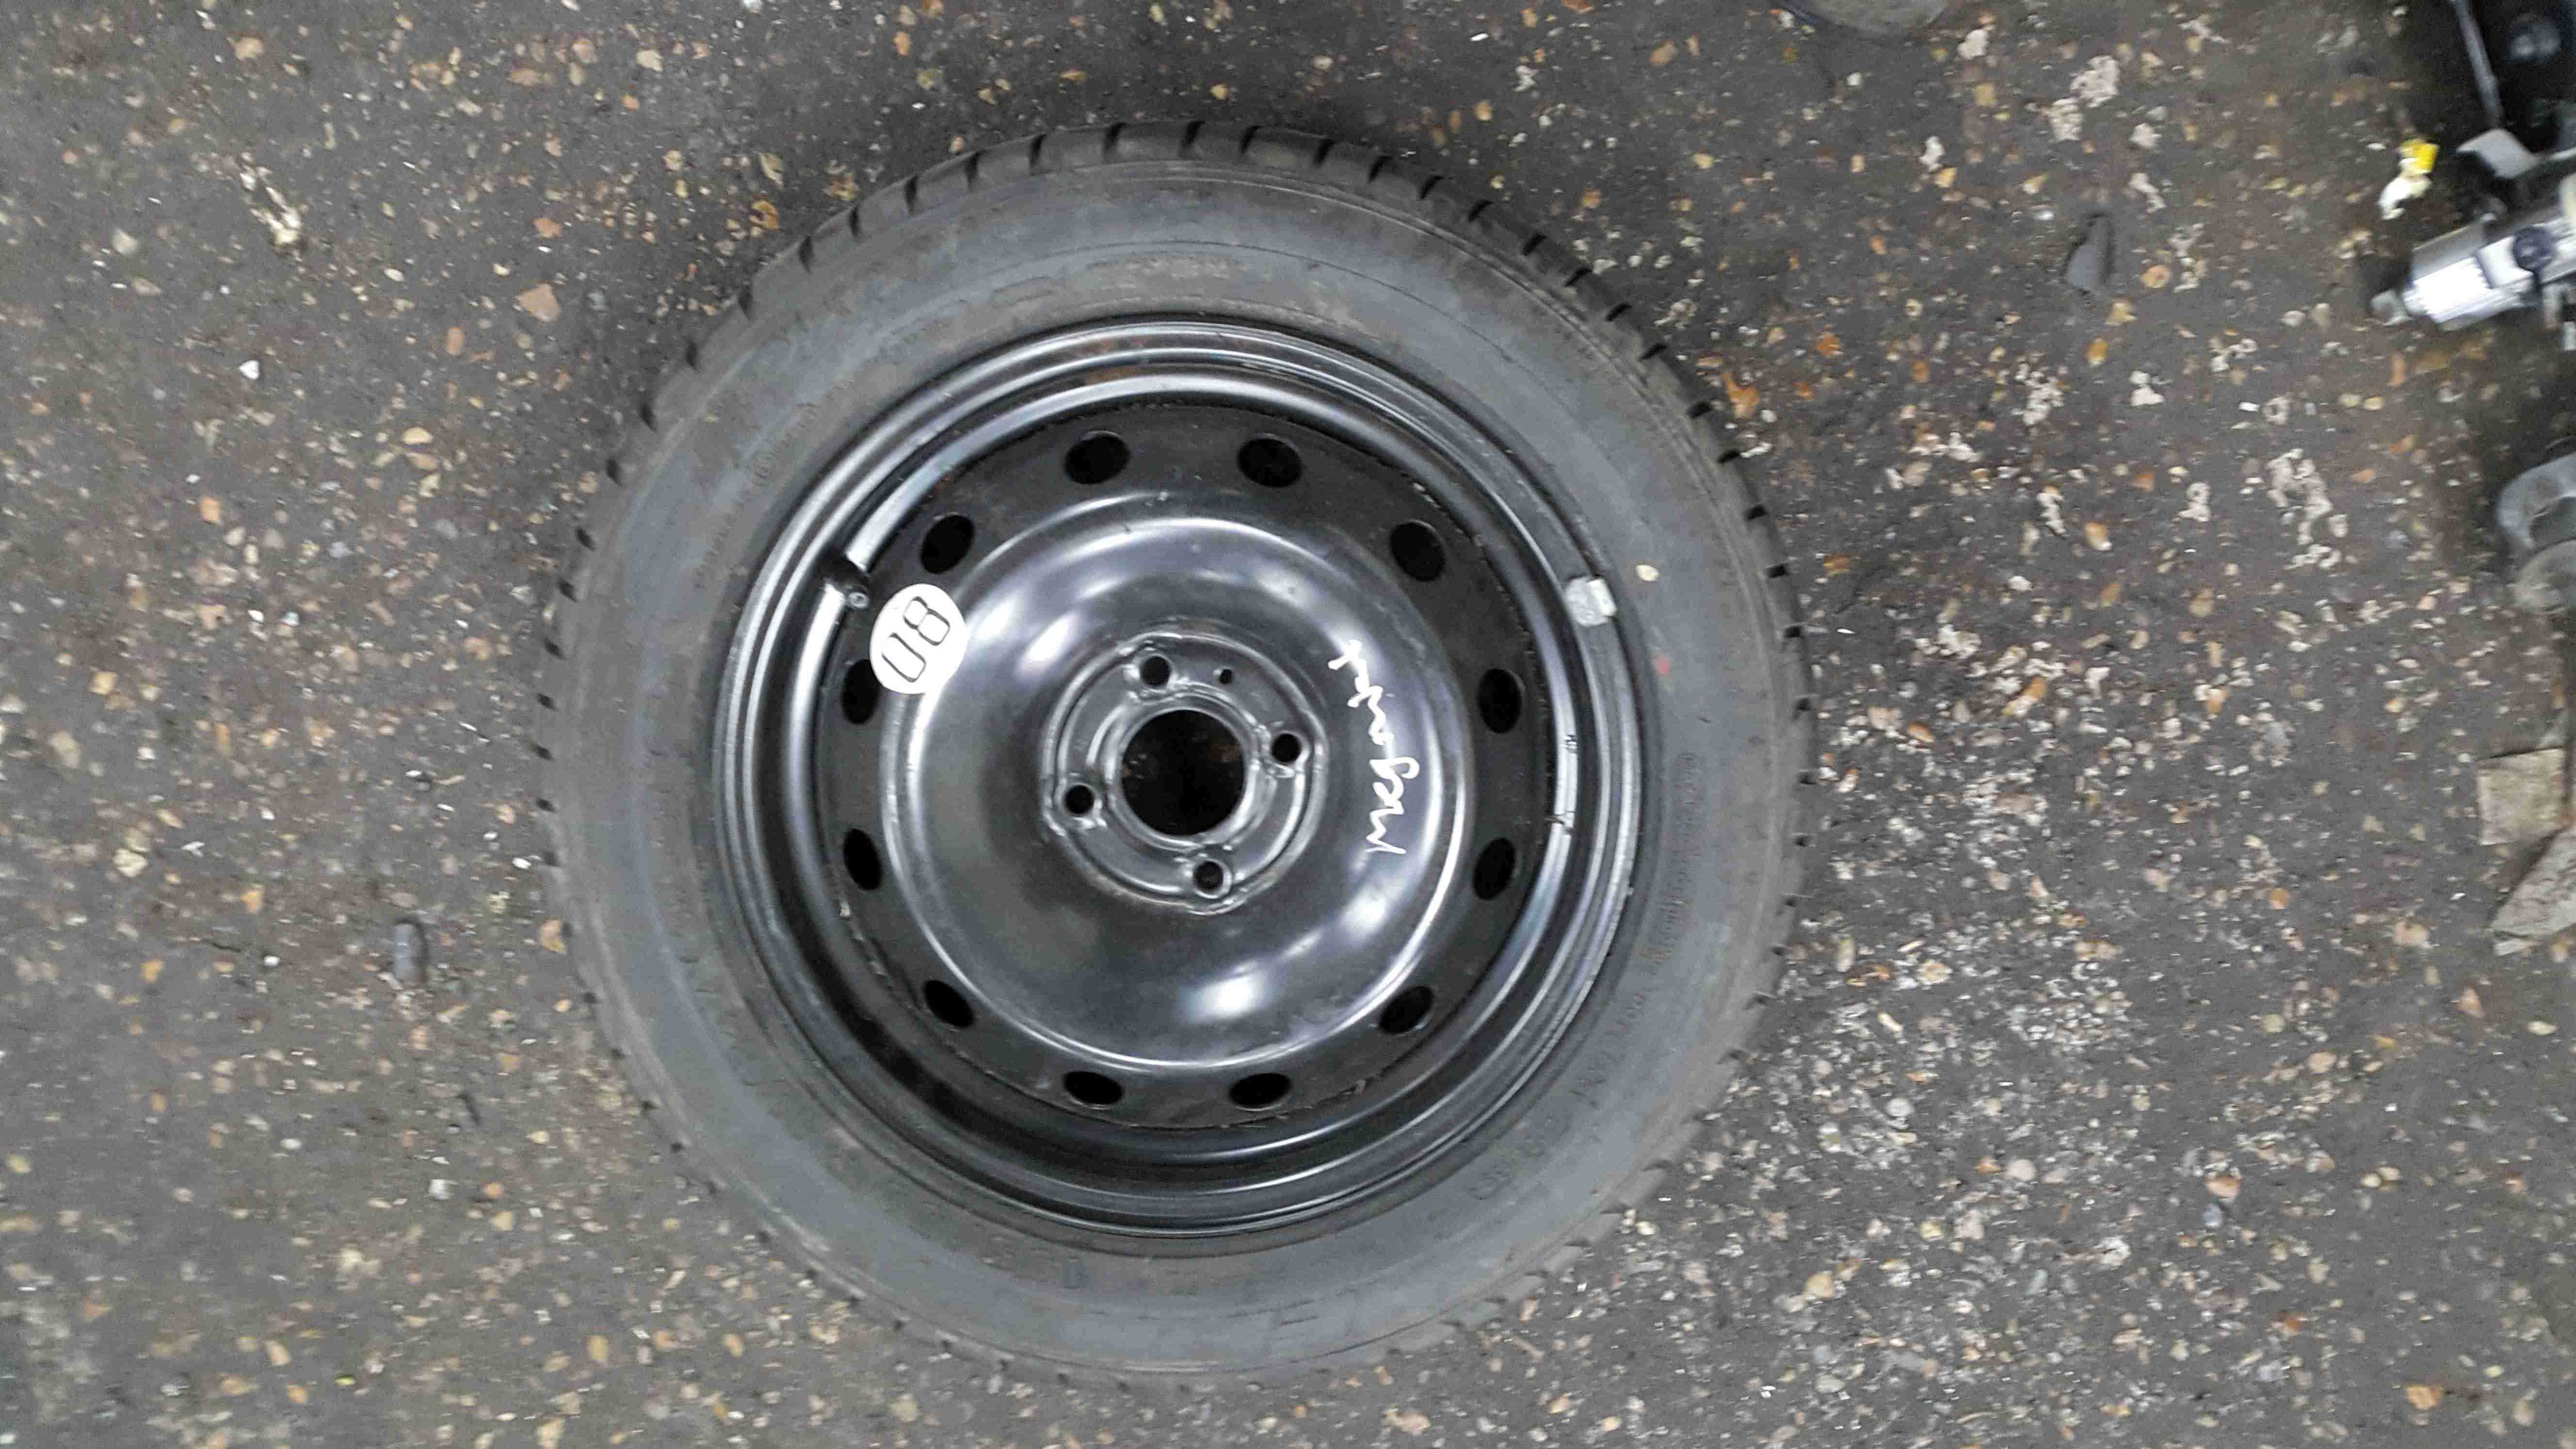 Renault Megane MK1 1999-2002 Spare Steel Wheel Rim  Tyre 195 55 15 8mm Tread